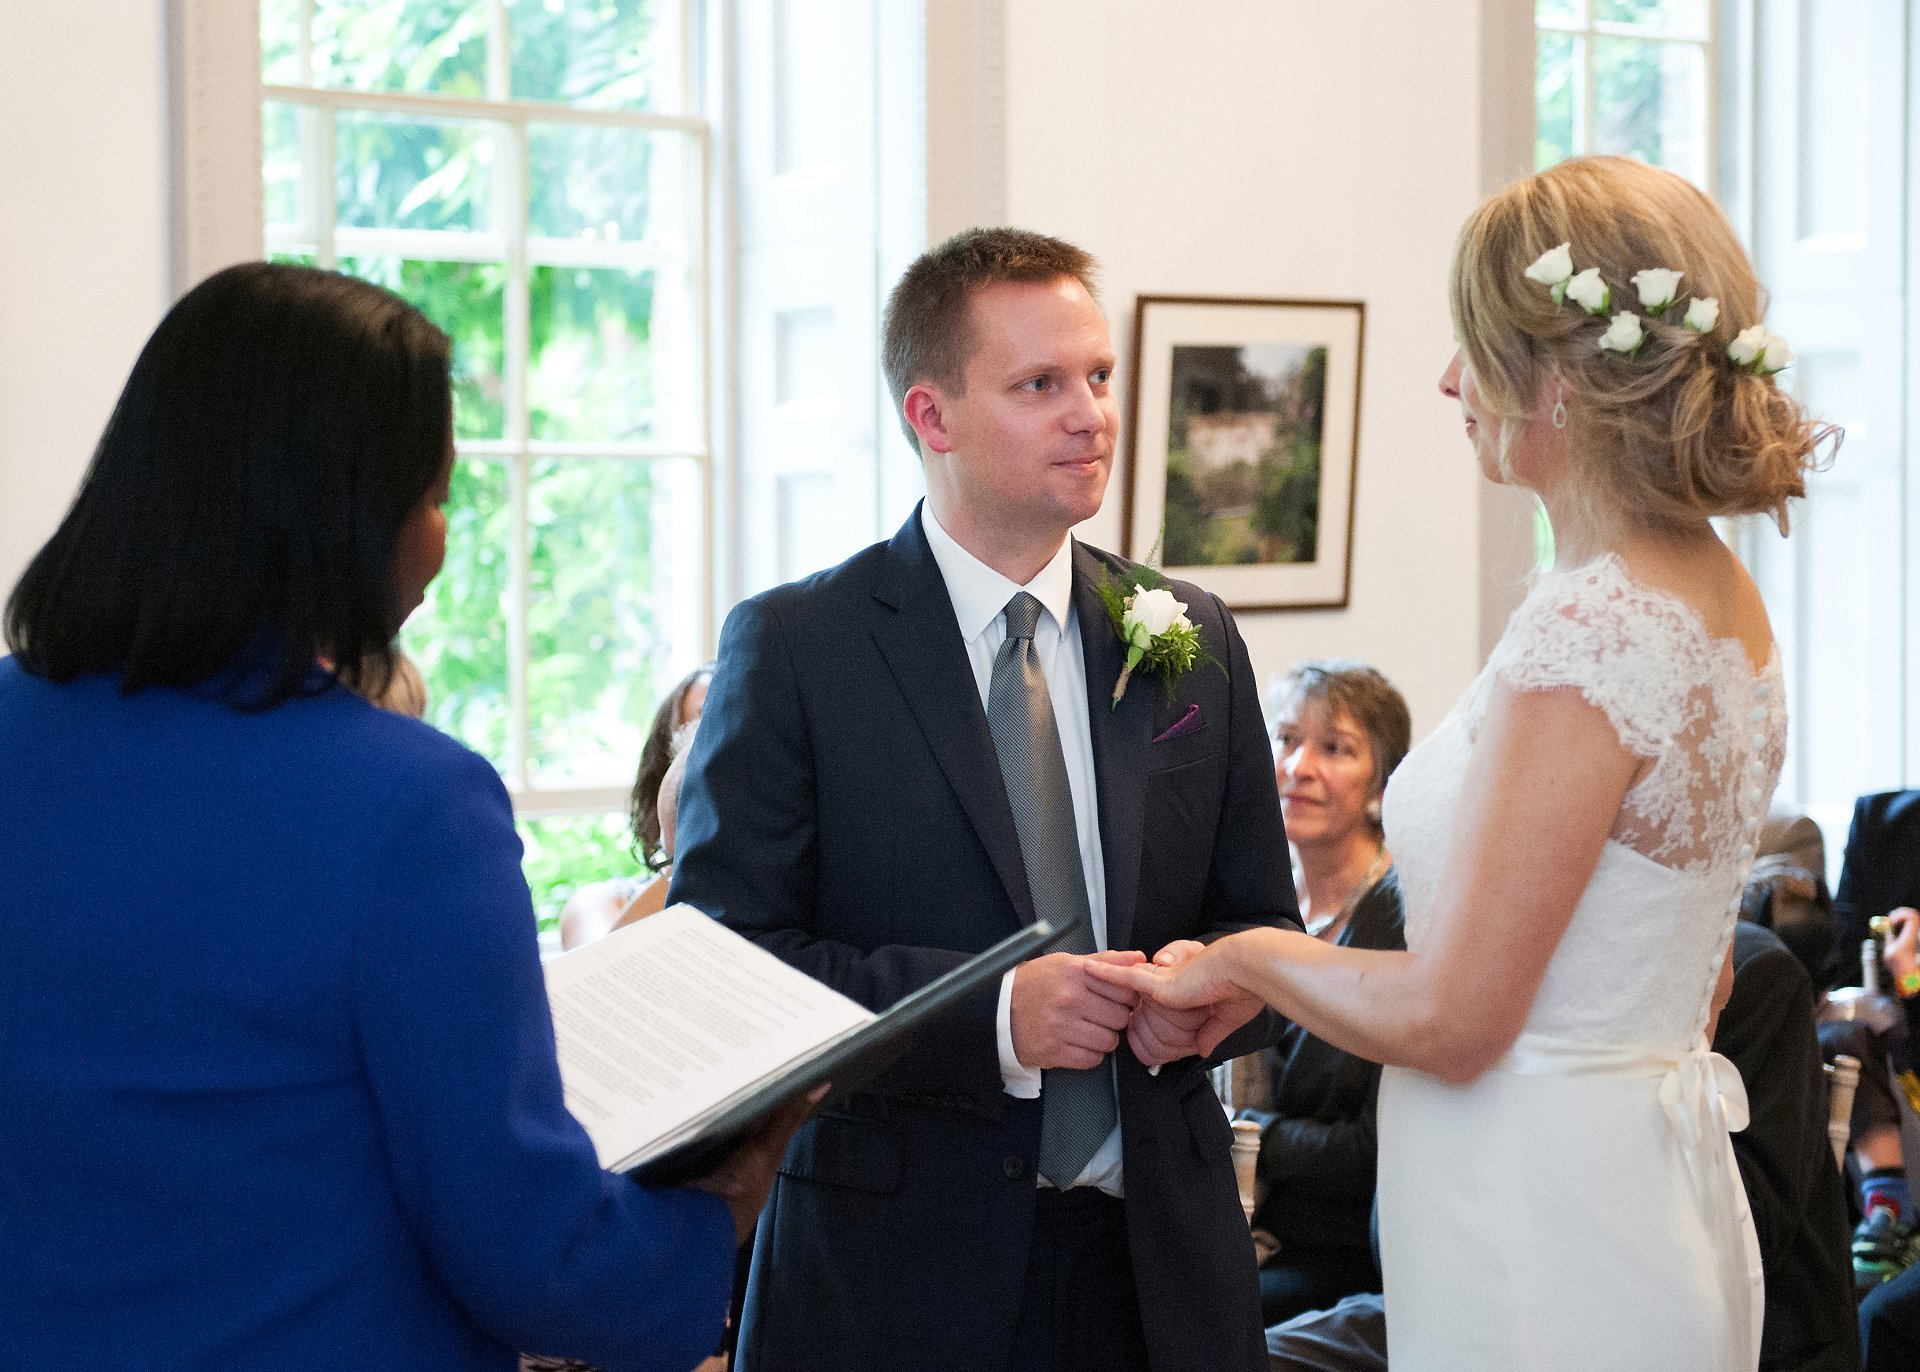 Exchange of vows and rings in Bishop Terrick's Drawing Room during a wedding ceremony